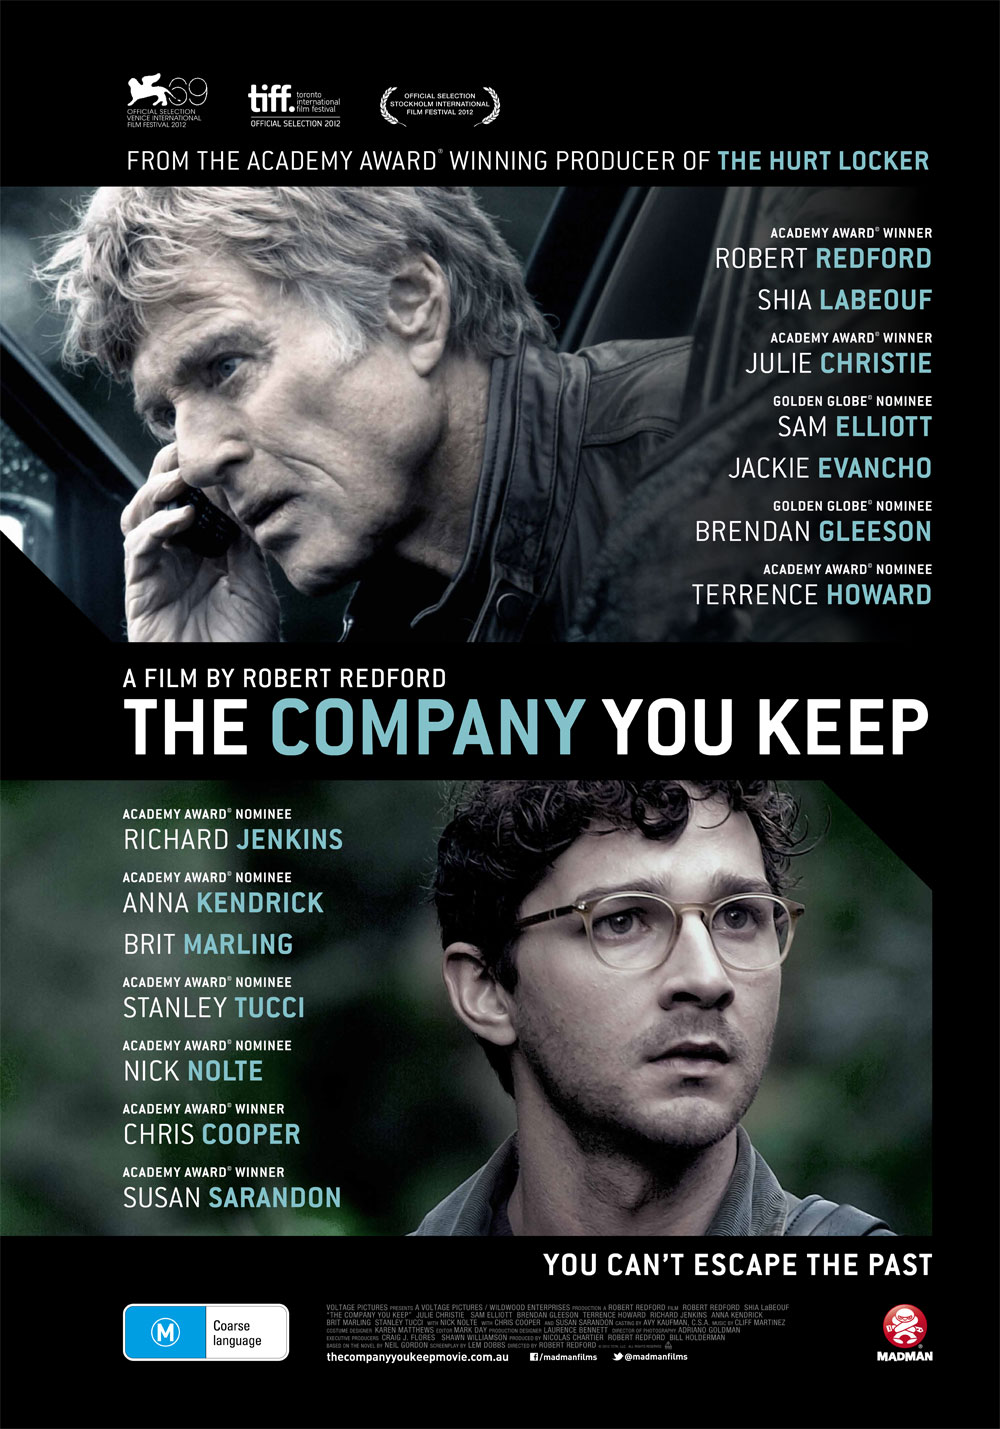 I didn't get tired, I grew up | the-company-you-keep-poster